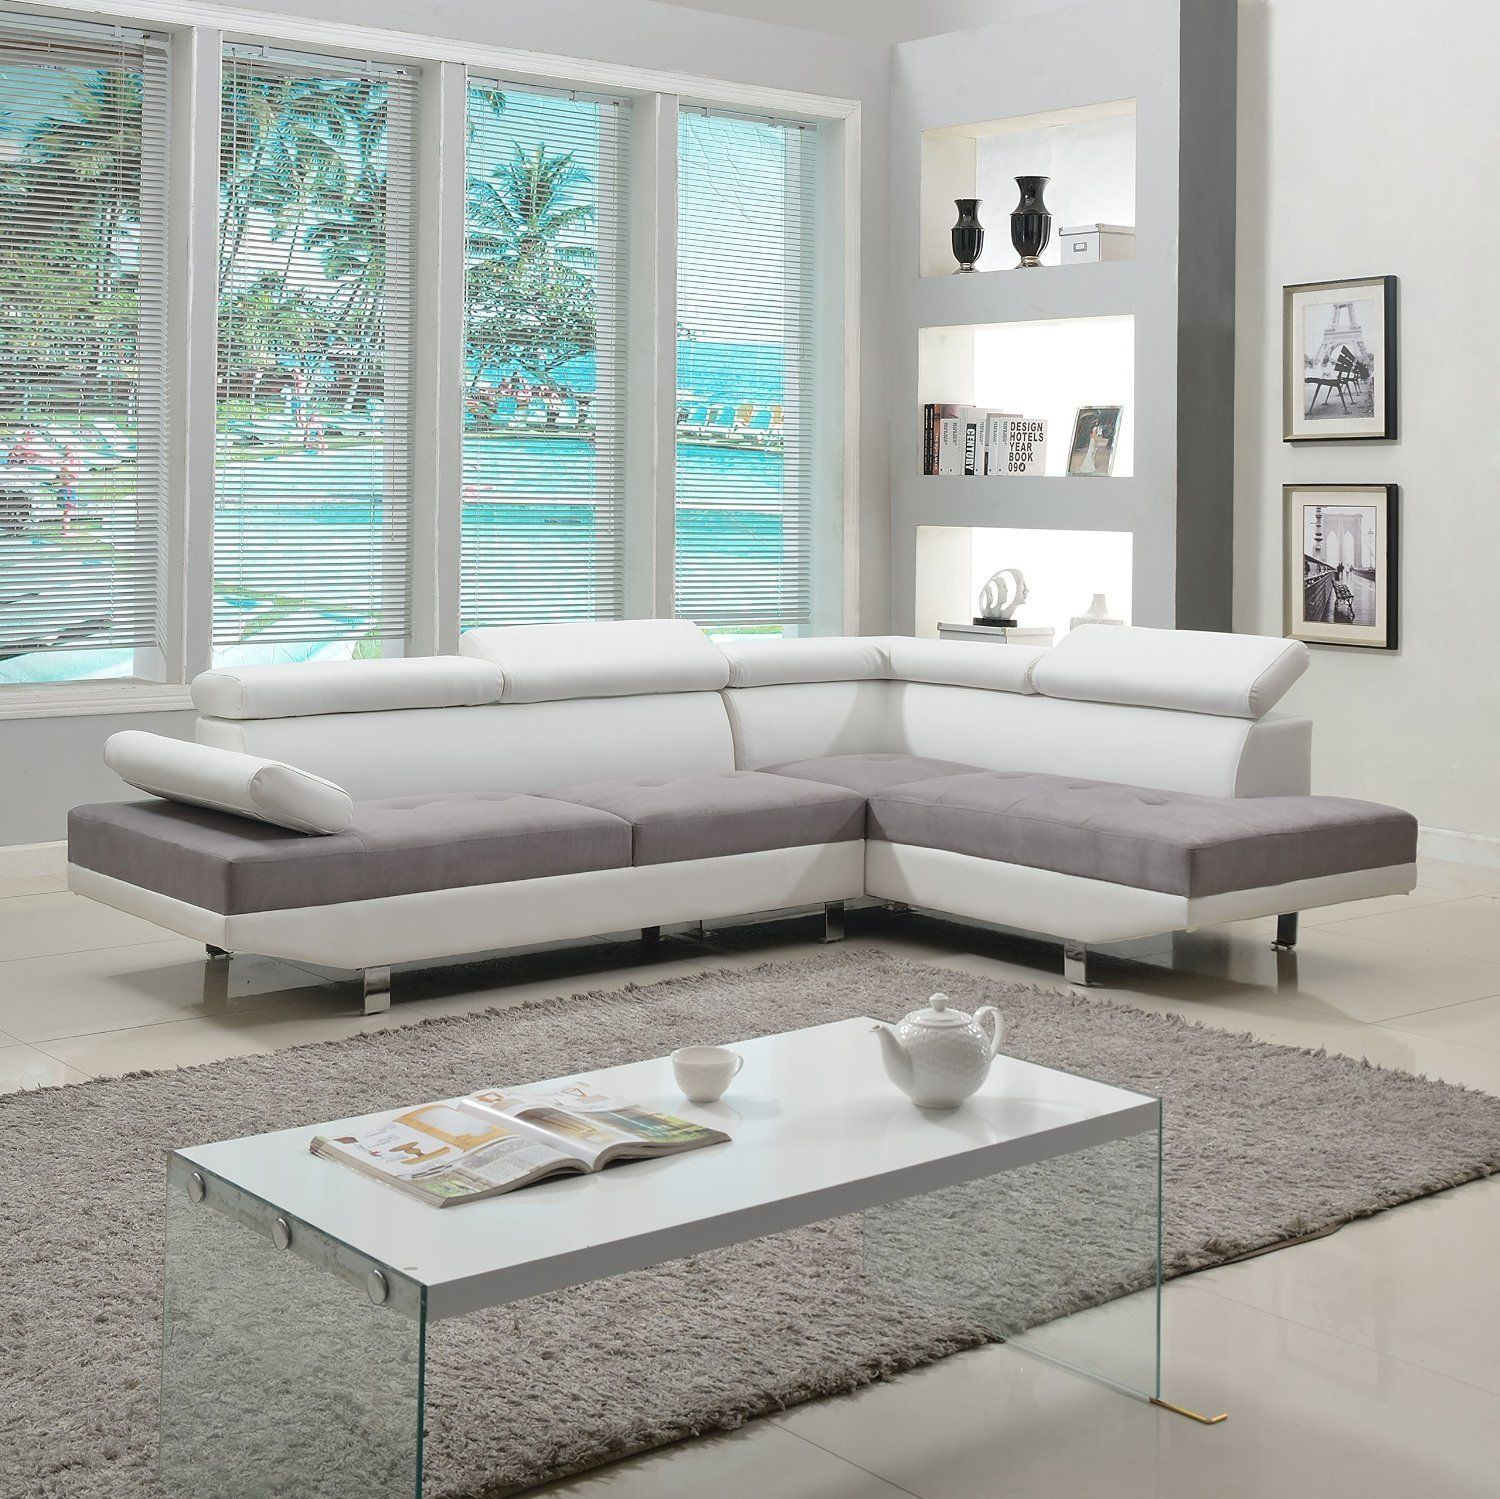 best of sectional sofas leather decoration-Contemporary Sectional sofas Leather Gallery